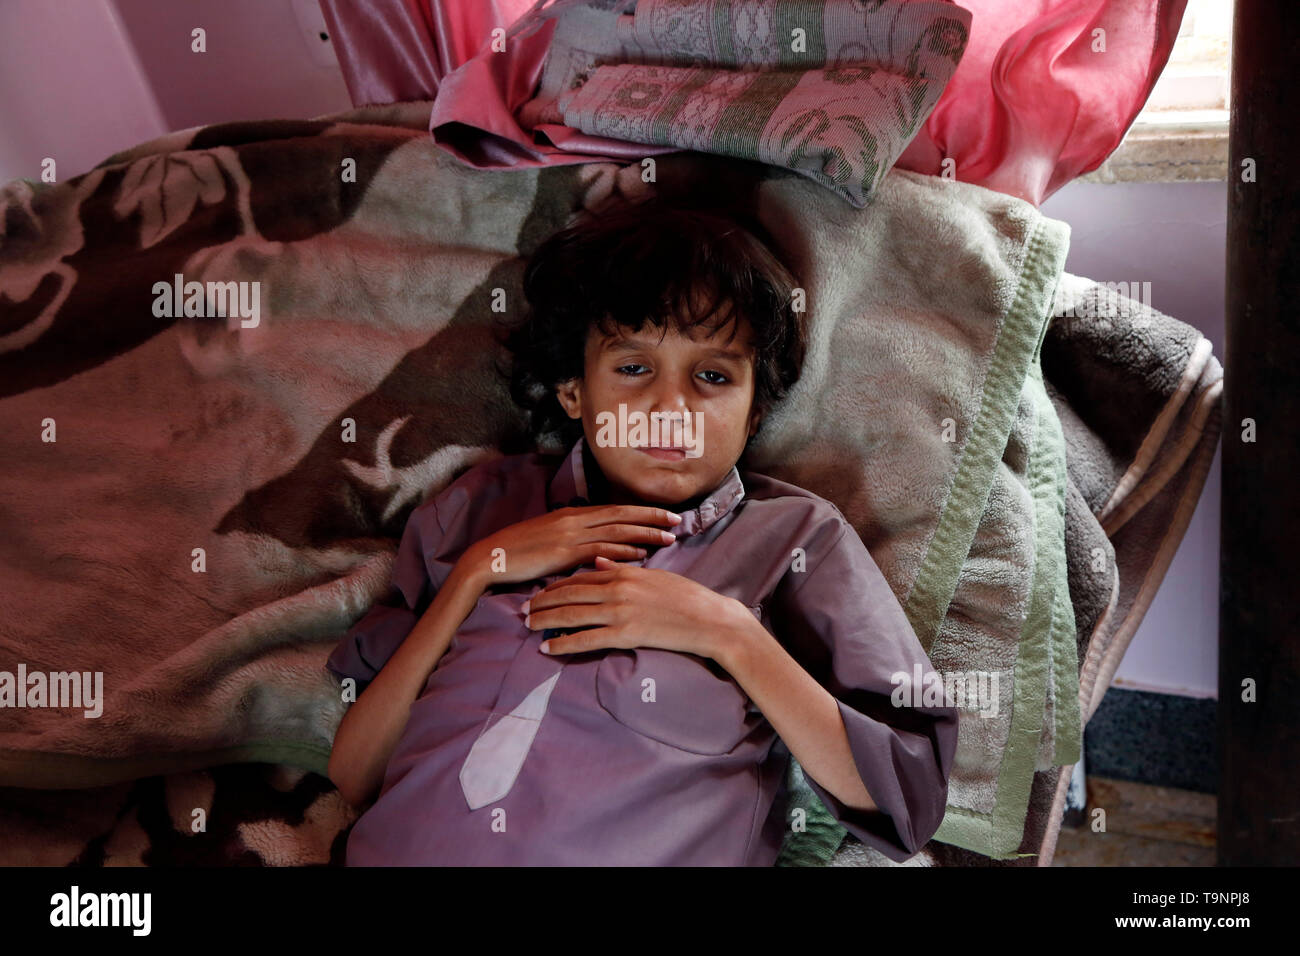 (190520) -- SANAA, May 20, 2019 (Xinhua) -- A malnourished child lies on a bed while receiving treatment at a malnutrition care-center in Sanaa, Yemen, on May 19, 2019. With 360,000 children suffering from severe acute malnutrition and 2.5 million - or half of all children under the age of five - stunted, the country is spiralling perilously close to the brink, Executive Director of the United Nations Children's Fund  (UNICEF) Henrietta Fore warned. (Xinhua/Mohammed Mohammed) - Stock Image